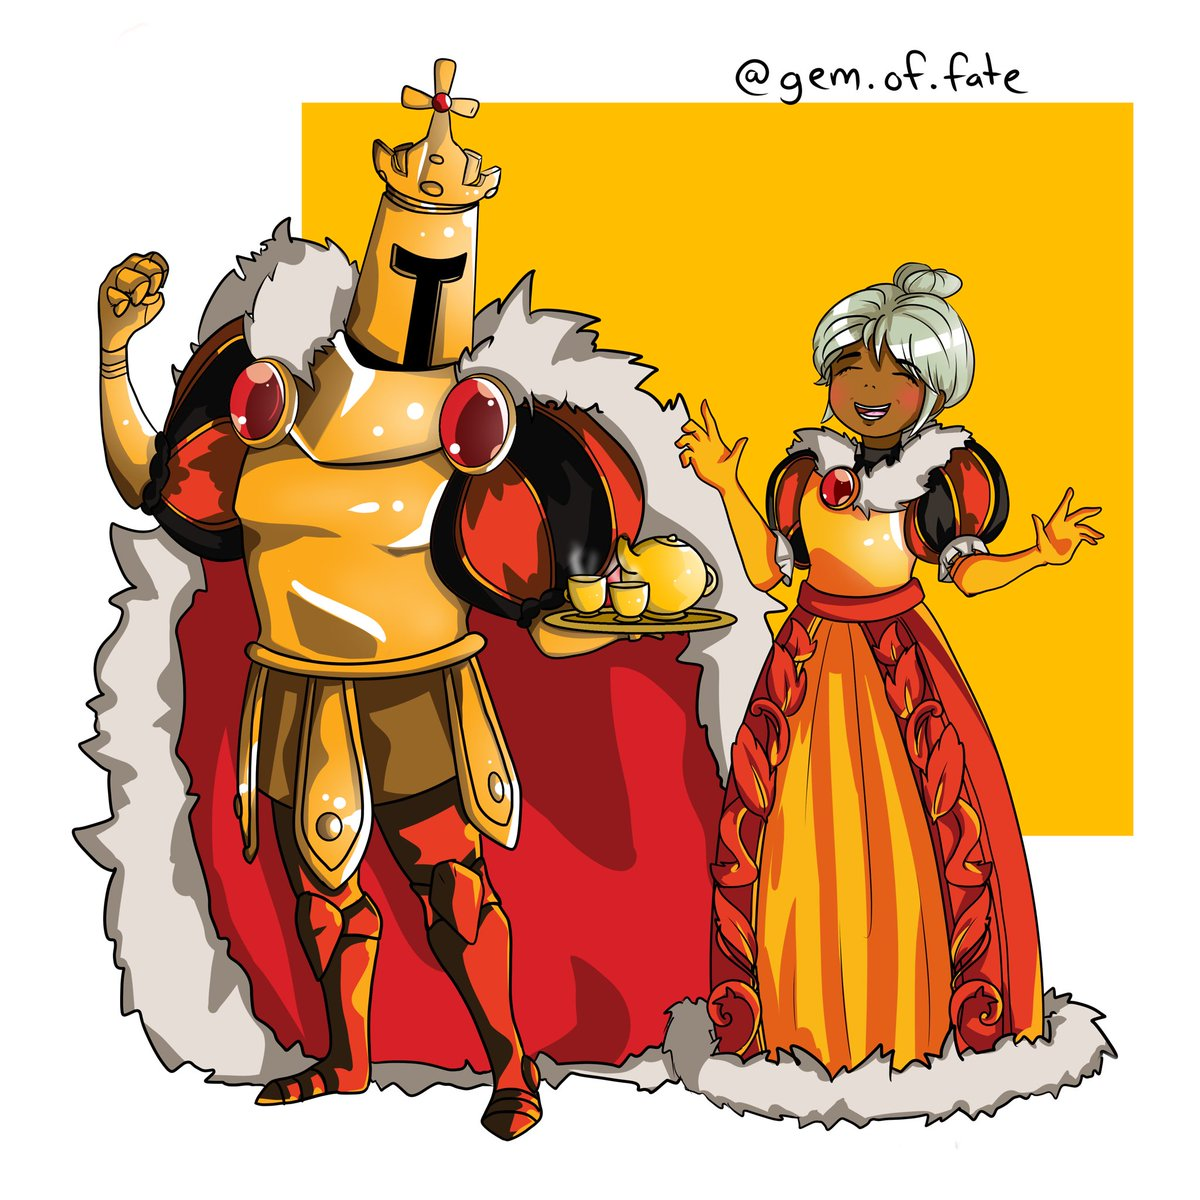 I'm really excited for King of Cards, so I drew some wholesome content while waiting for its release! I'm posting it here bc the following for Shovel Knight is bigger on Twitter. @YachtClubGames is a blessing  (The @ in the pic is my Insta you can disregard it) #kingofcards<br>http://pic.twitter.com/T0TZ8W9el7